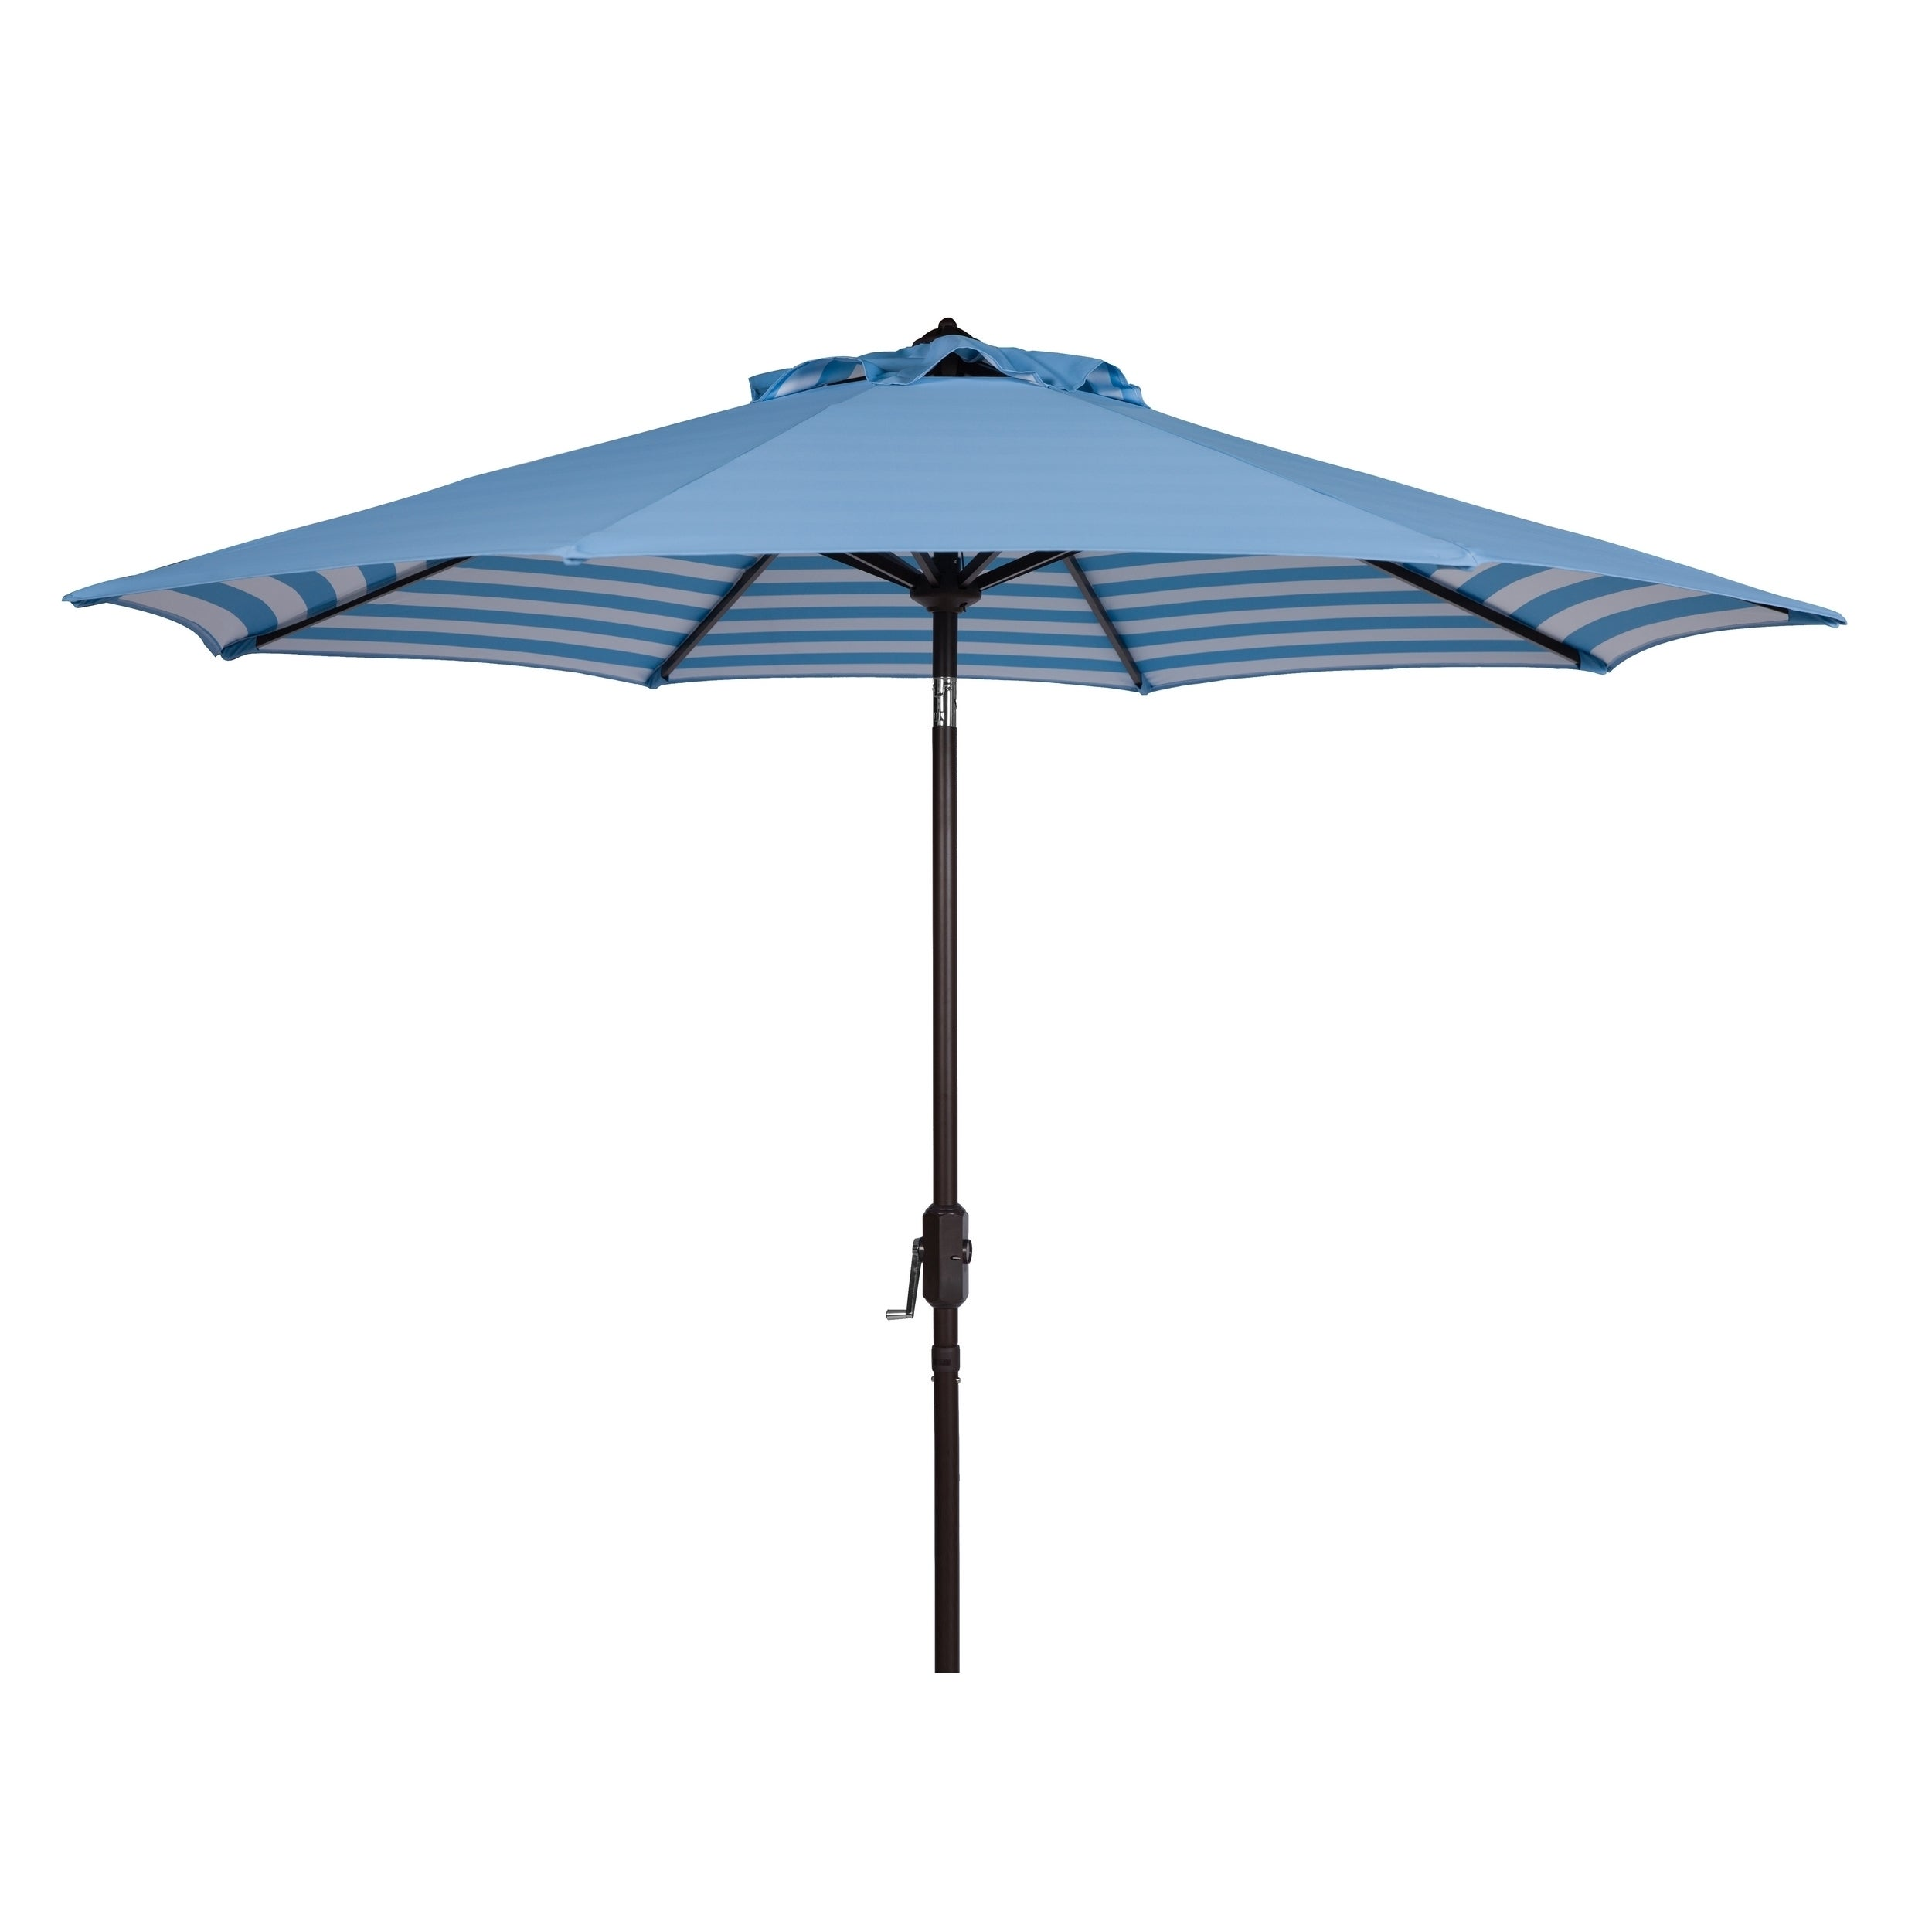 Incroyable Shop Safavieh Athens Inside Out Striped 9 Ft Crank Blue/ White Outdoor  Umbrella   Free Shipping Today   Overstock.com   14586559